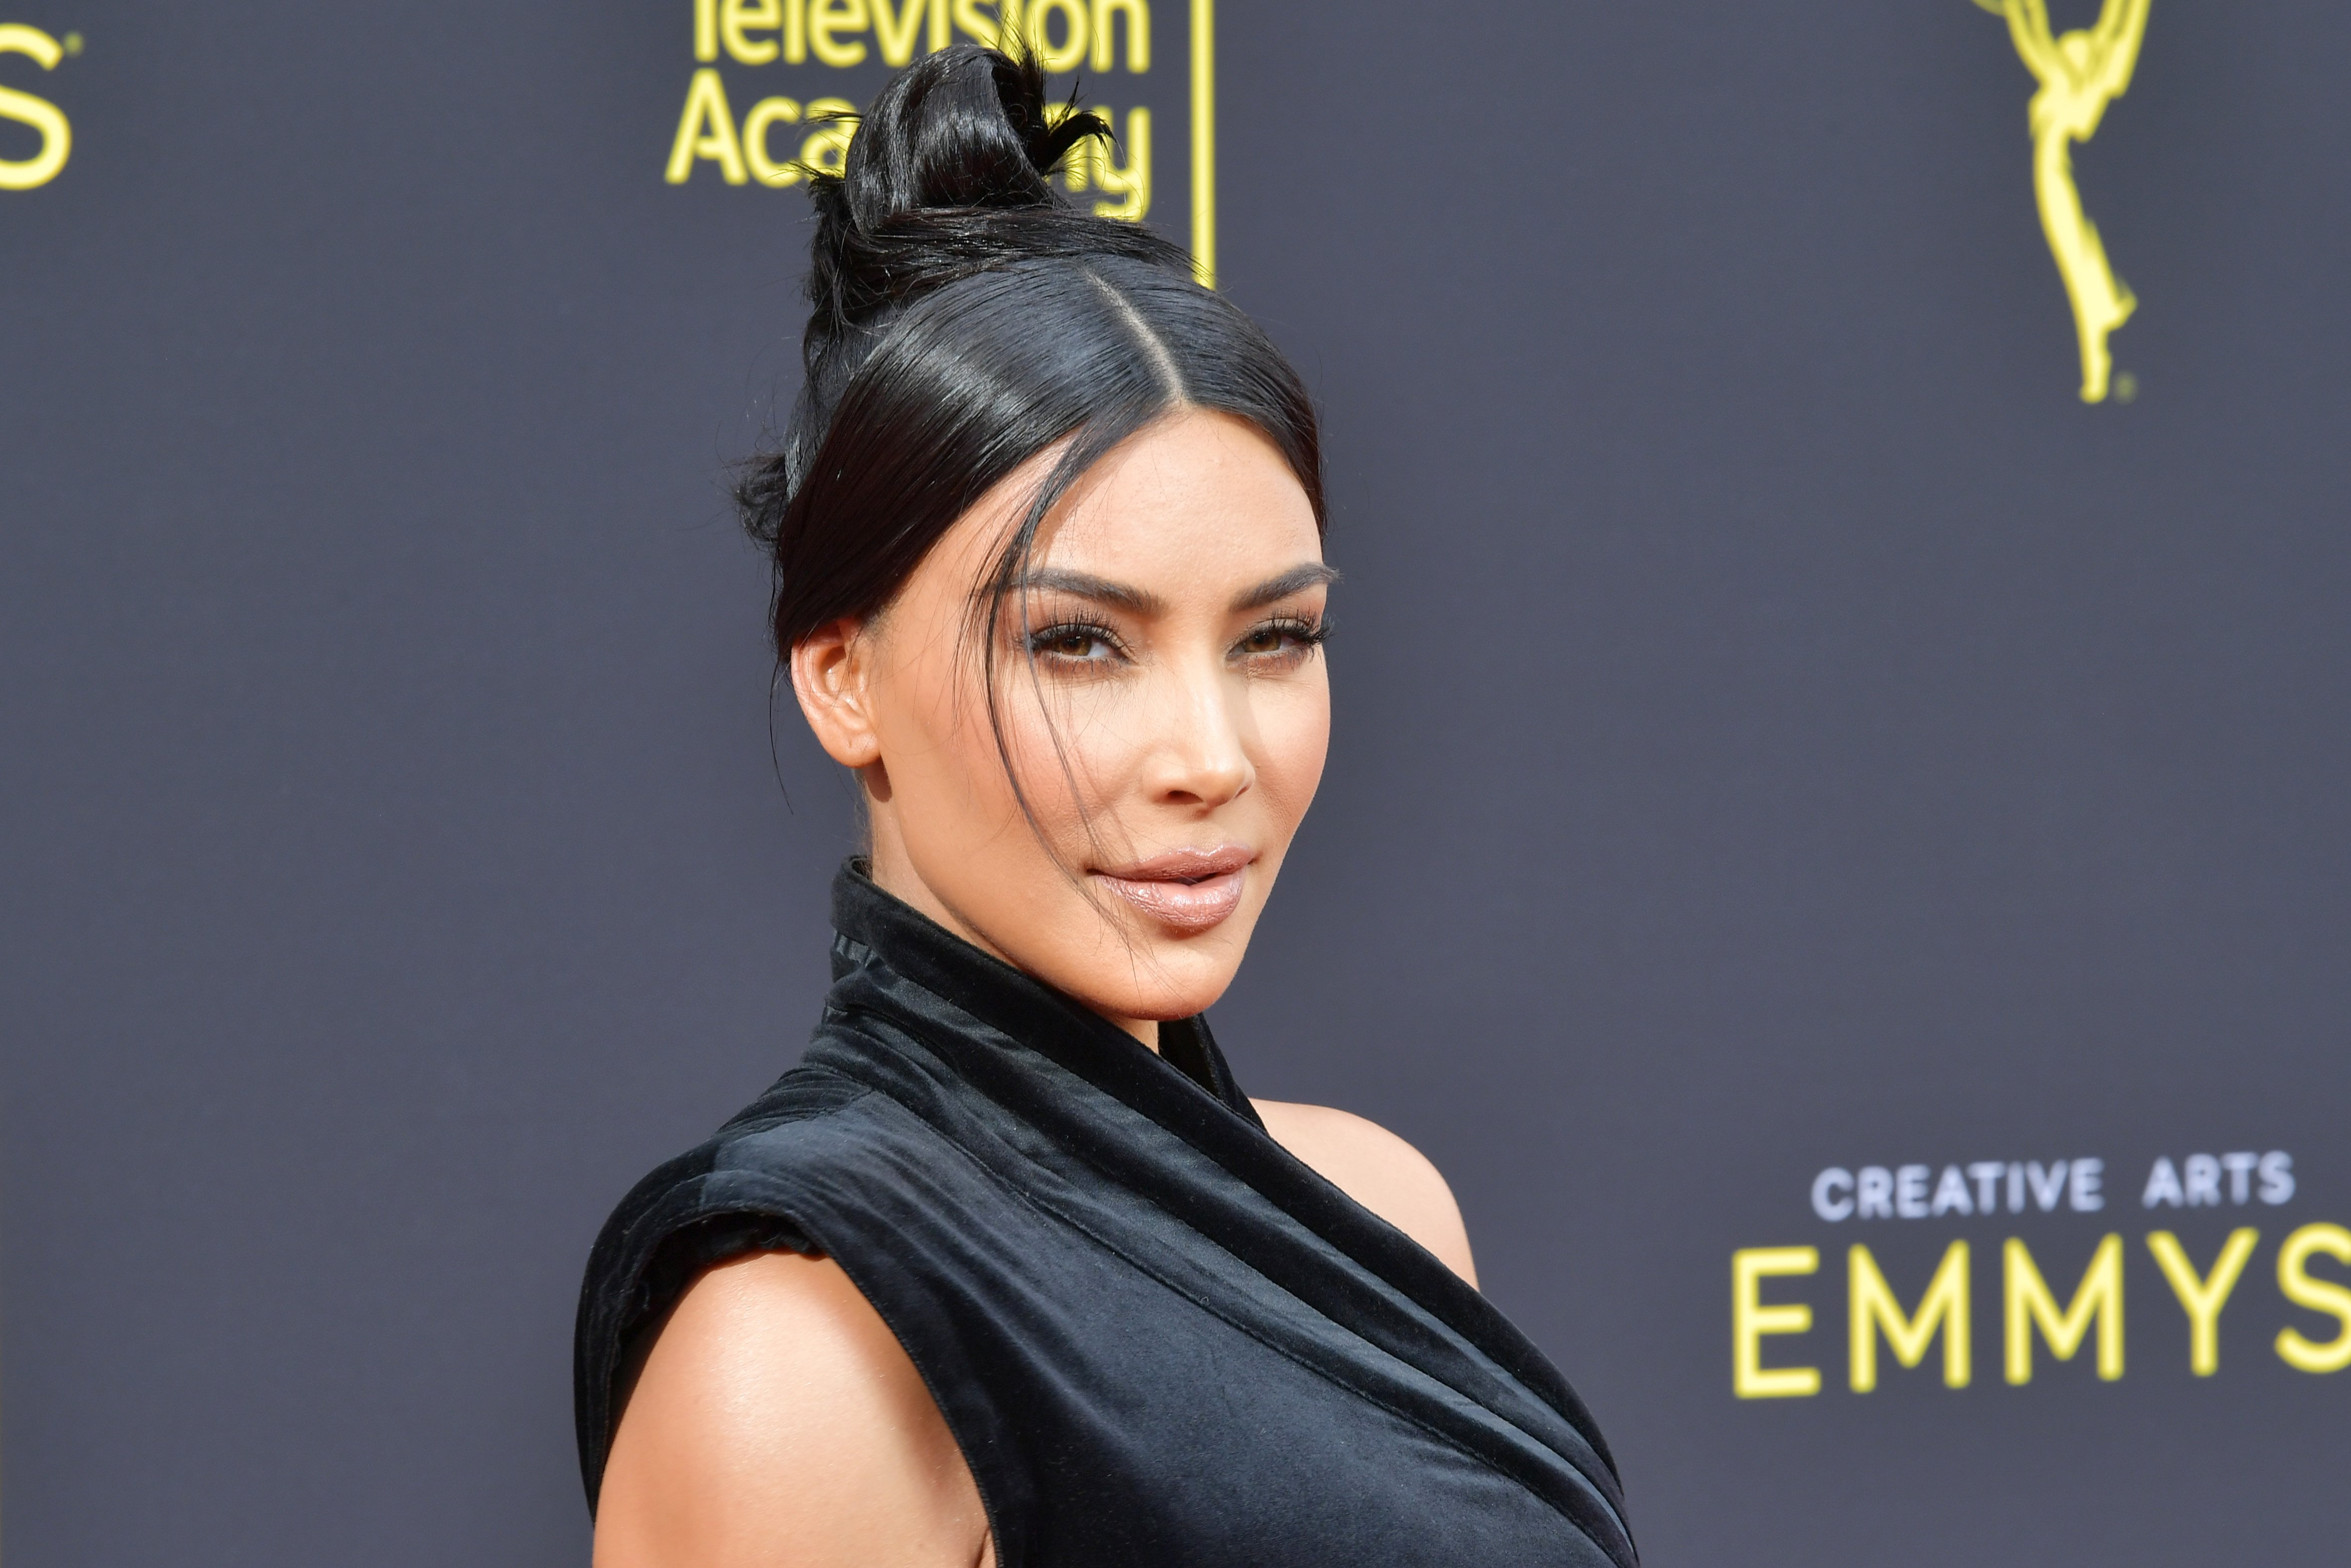 Kim Kardashian West at the 2019 Creative Arts Emmy Awards in Los Angeles on September 14, 2019 | Photo: Getty Images